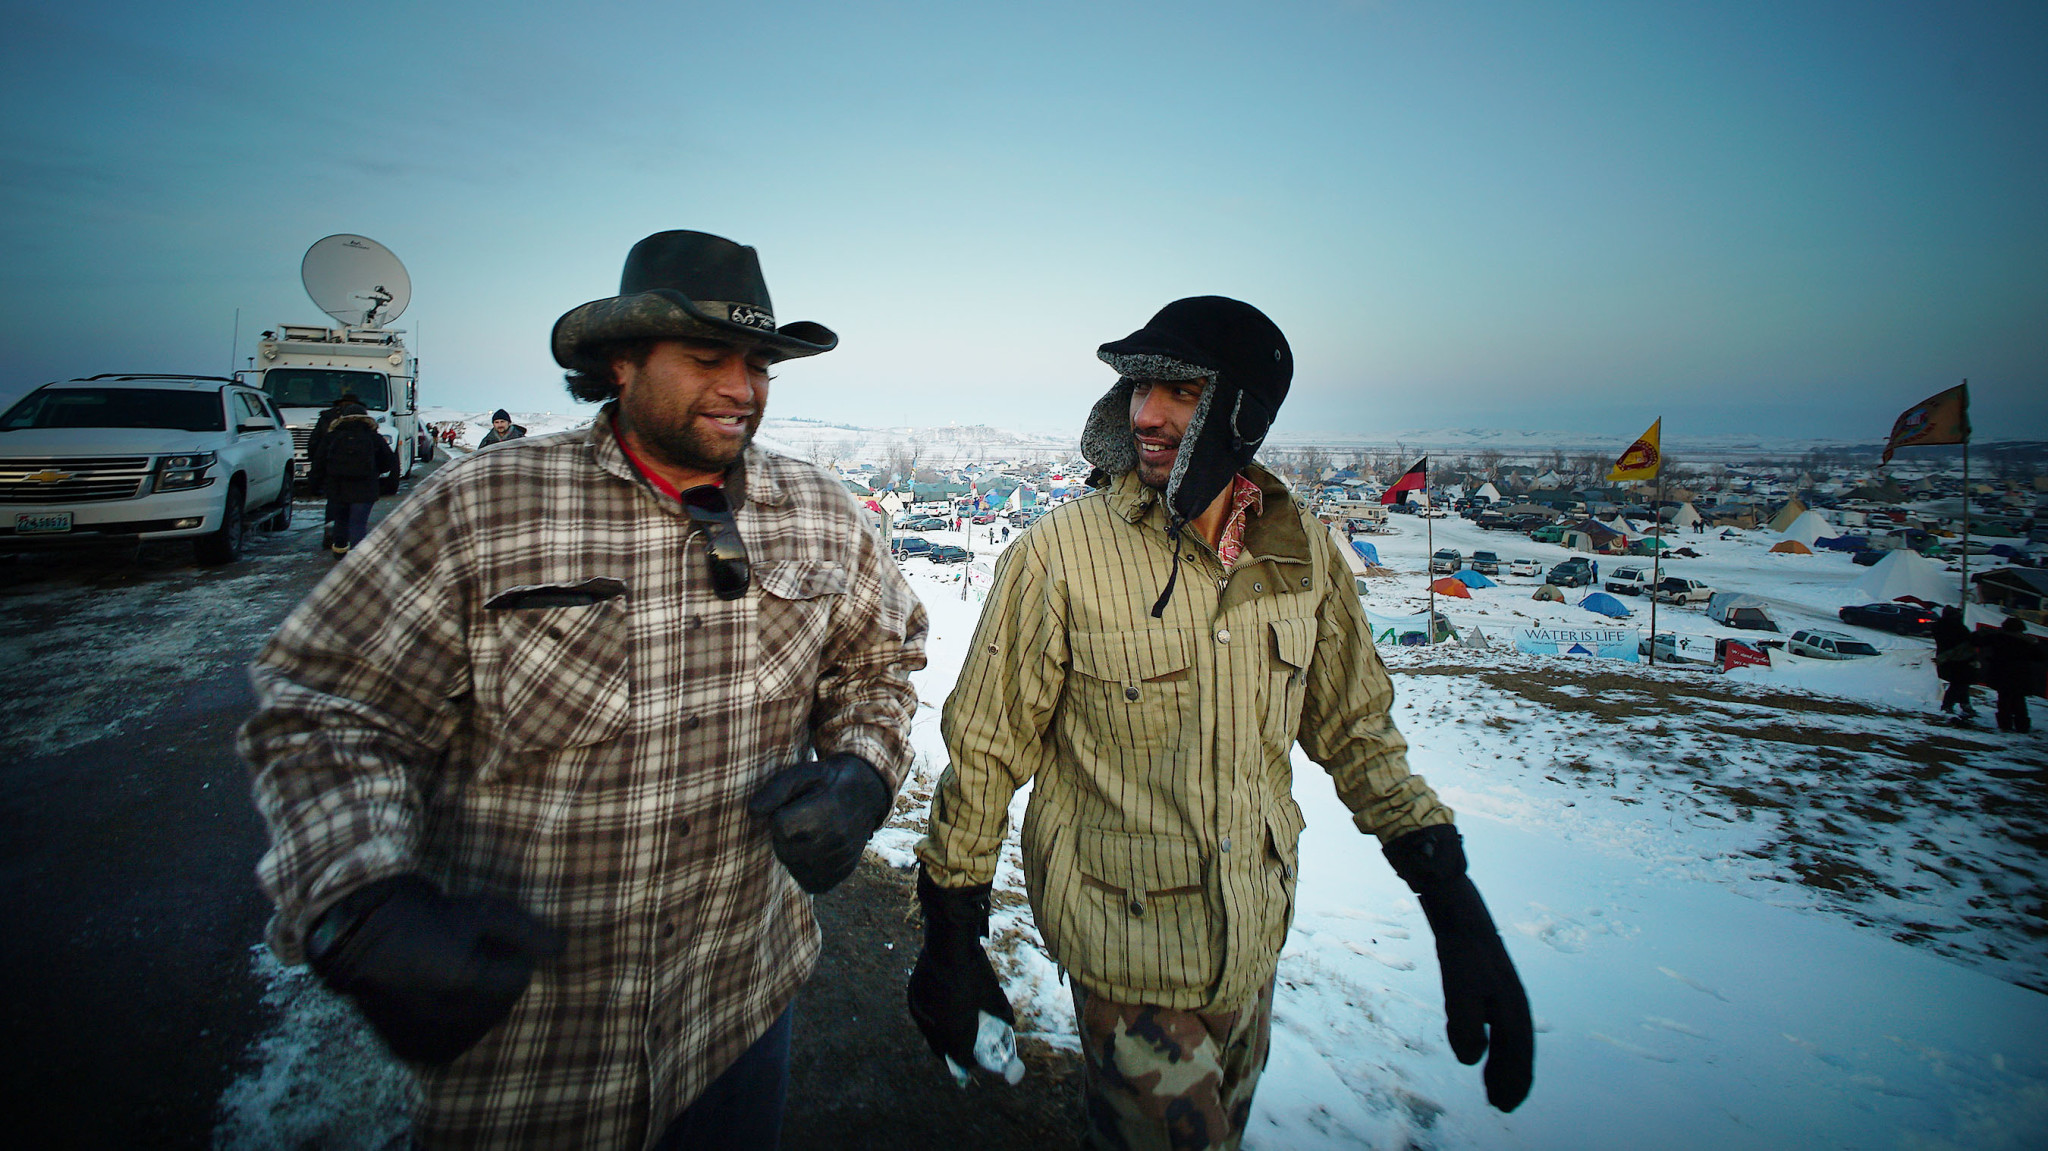 <p>Dec. 3: A number of Hawaii residents joined the thousands of people protesting the Dakota Access Pipeline project near the Standing Rock Sioux reservation in North Dakota, including Michael Kyser Jr., left, and Leomana Turalde. <em>Cory Lum/Civil Beat</em></p>